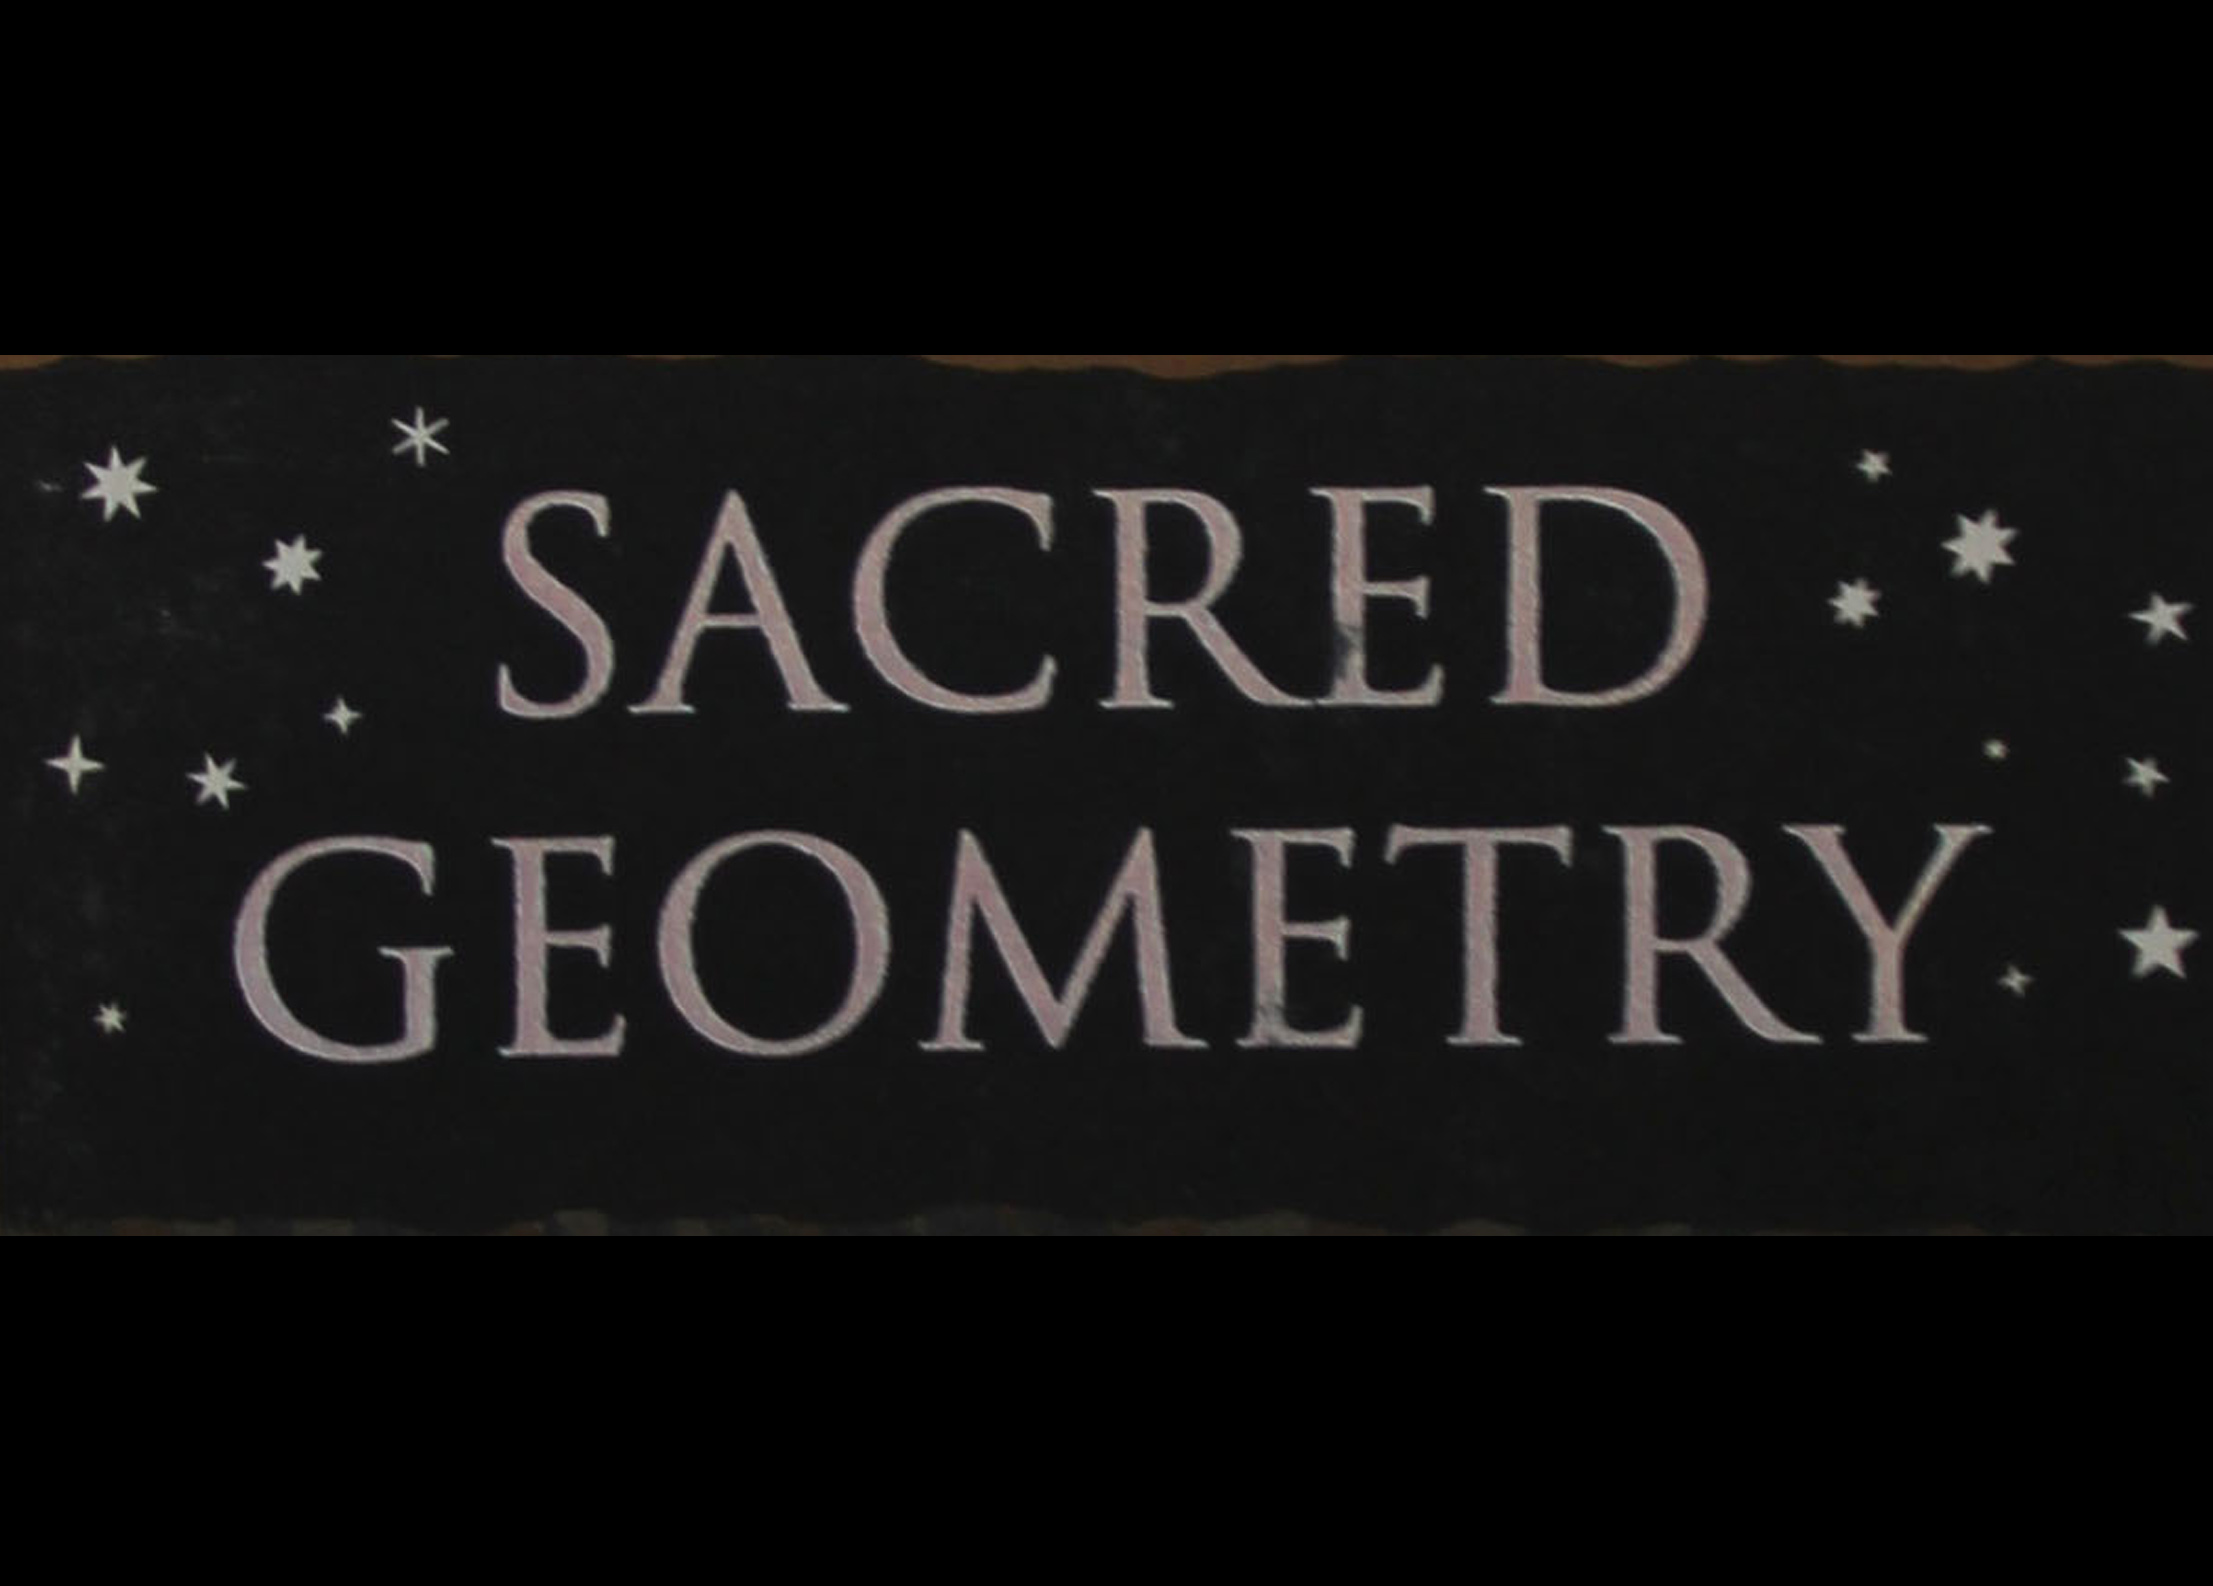 Excerpt from 'Sacred geometry', Miranda Lundy